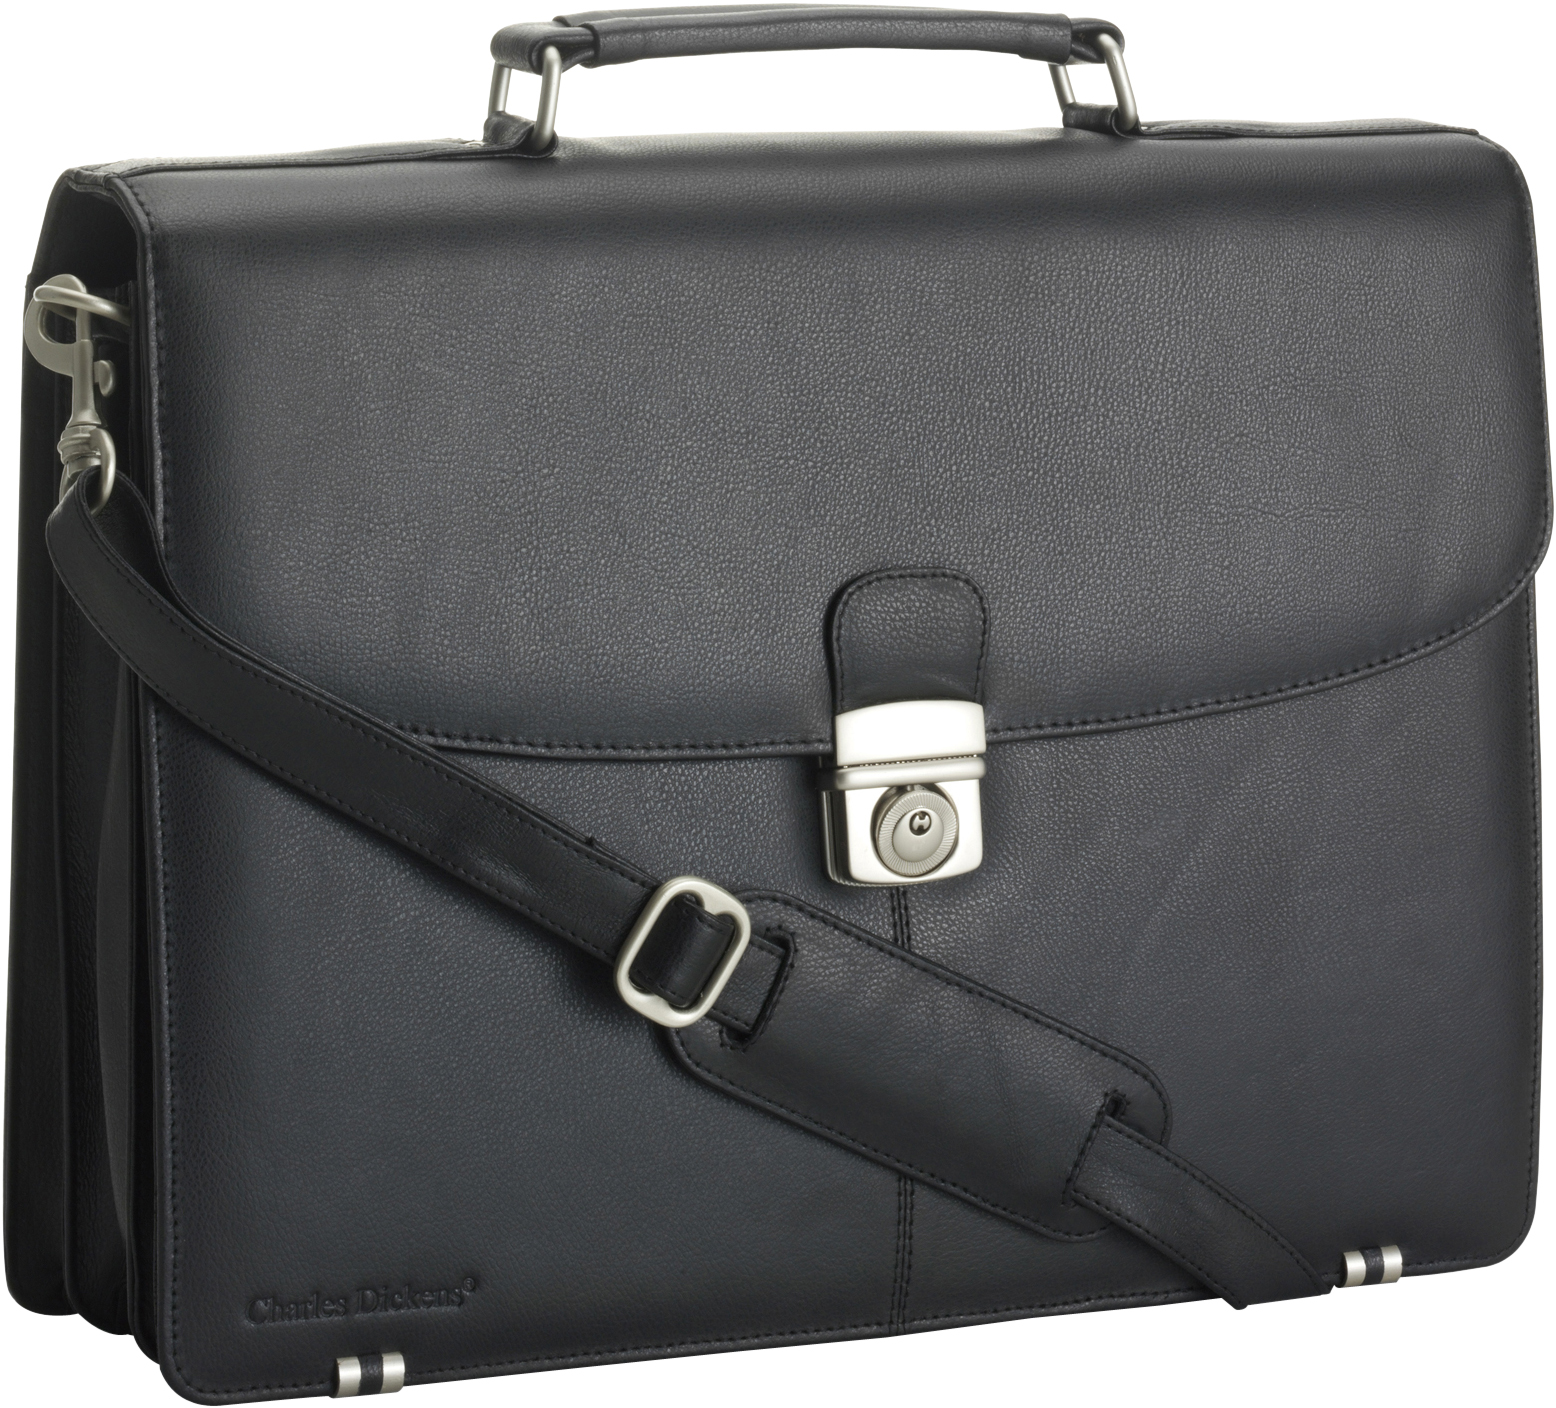 Branded Charles Dickens briefcase